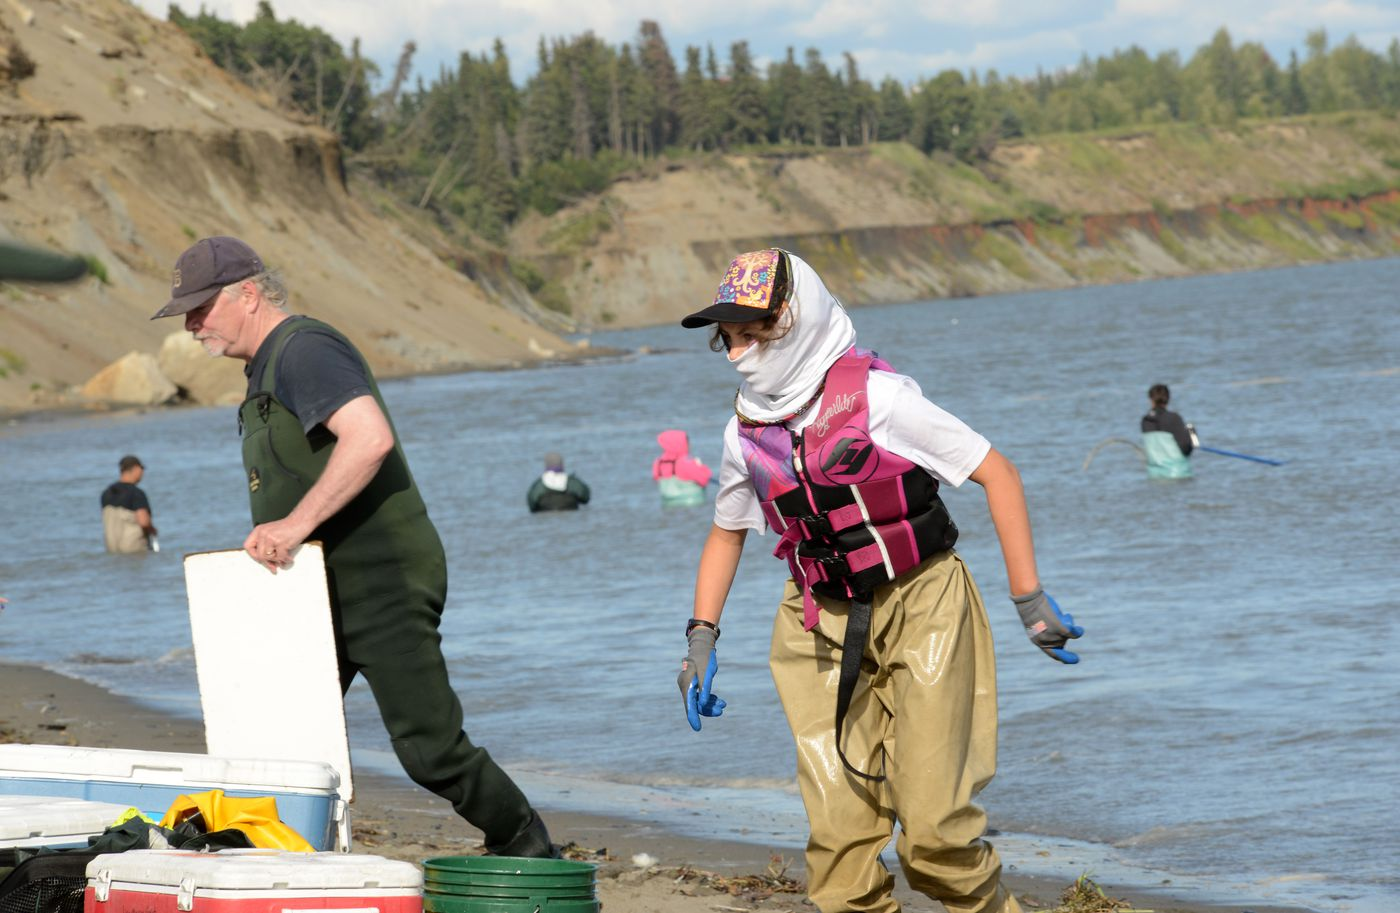 A dipnetter has a well-covered face while fishing for salmon in the Kenai River on Tuesday. (Anne Raup / ADN)